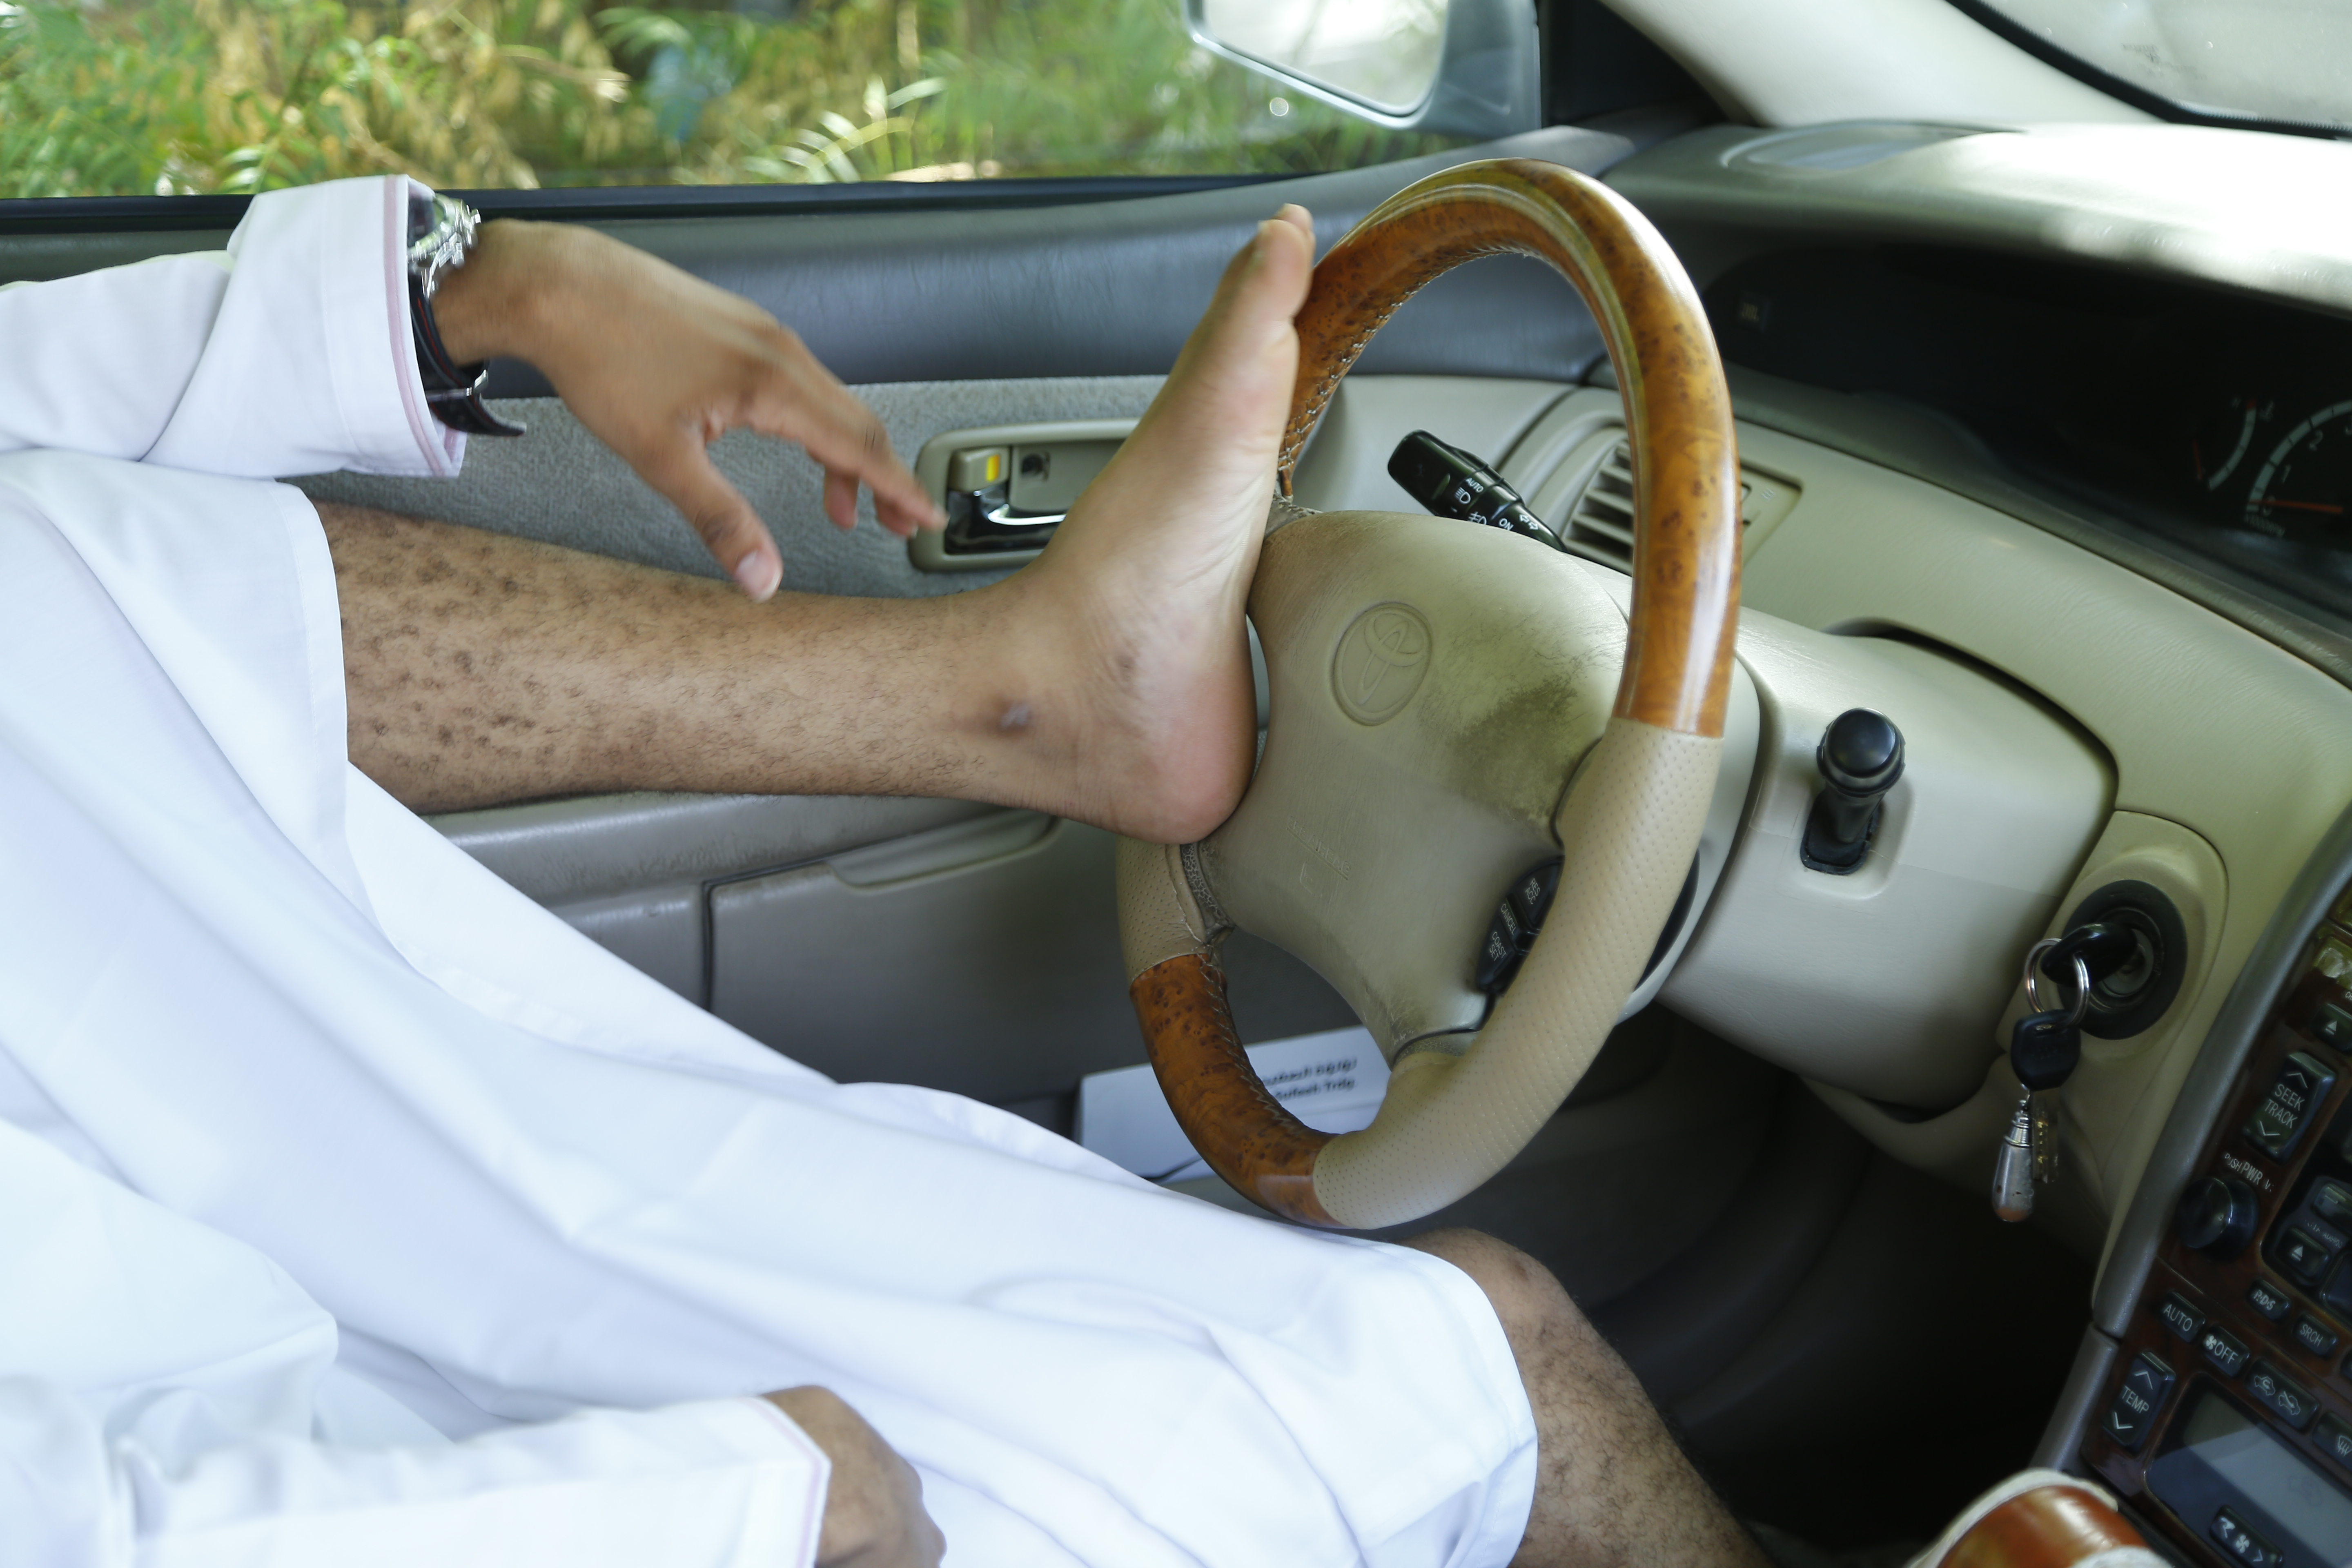 Don't drive with your feet, says Royal Oman Police